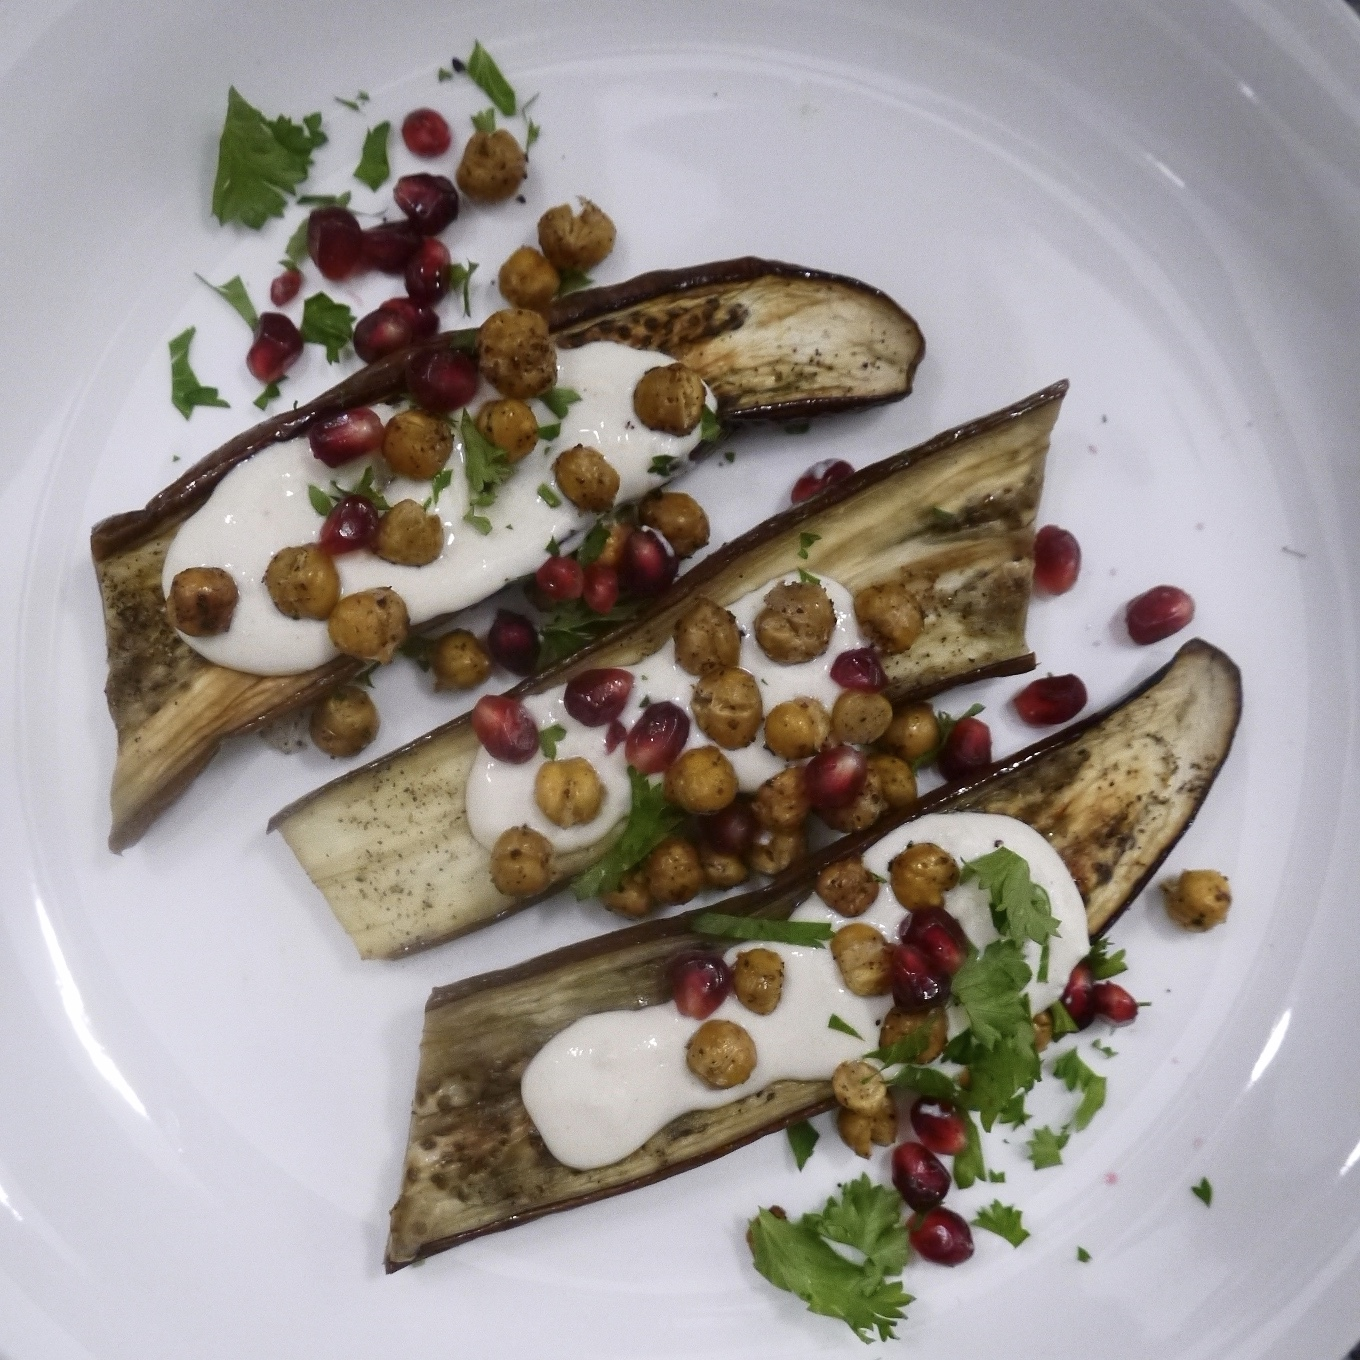 roasted eggplant and chickpeas with tahini sauce - trustinkim